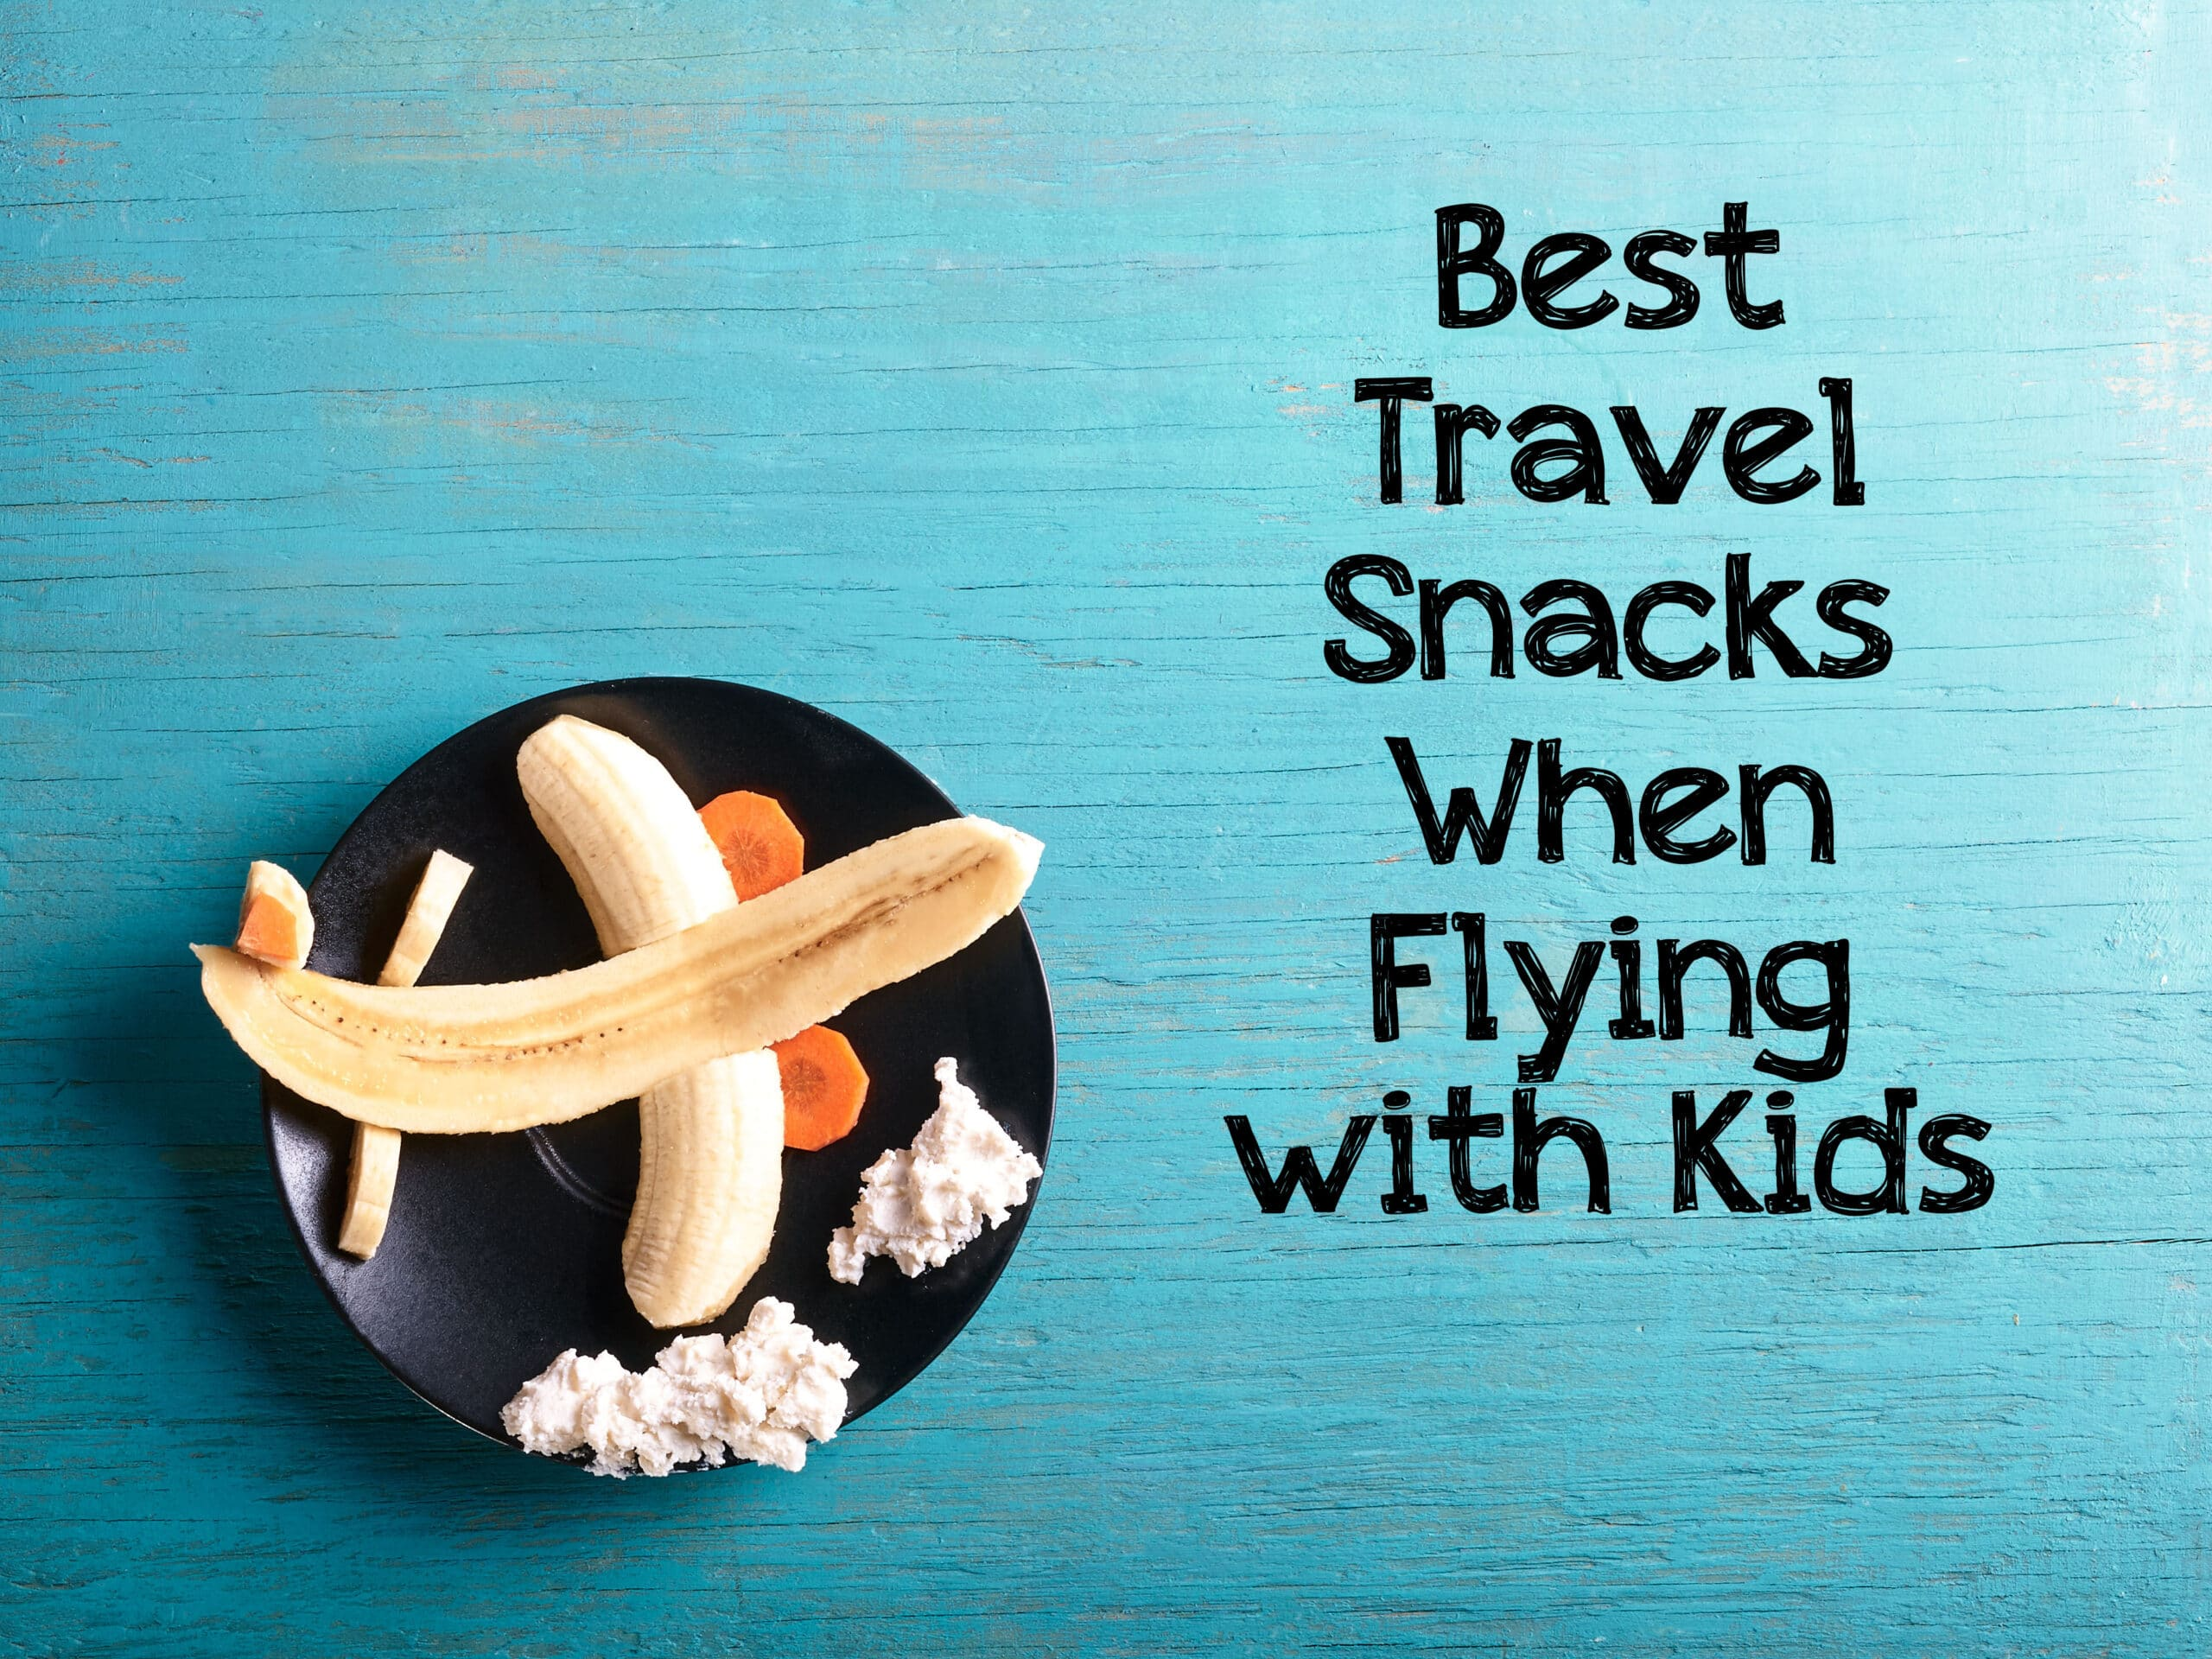 Flying With Kids 20 Best Plane Snacks And Tips For Happy Travel Super Healthy Kids